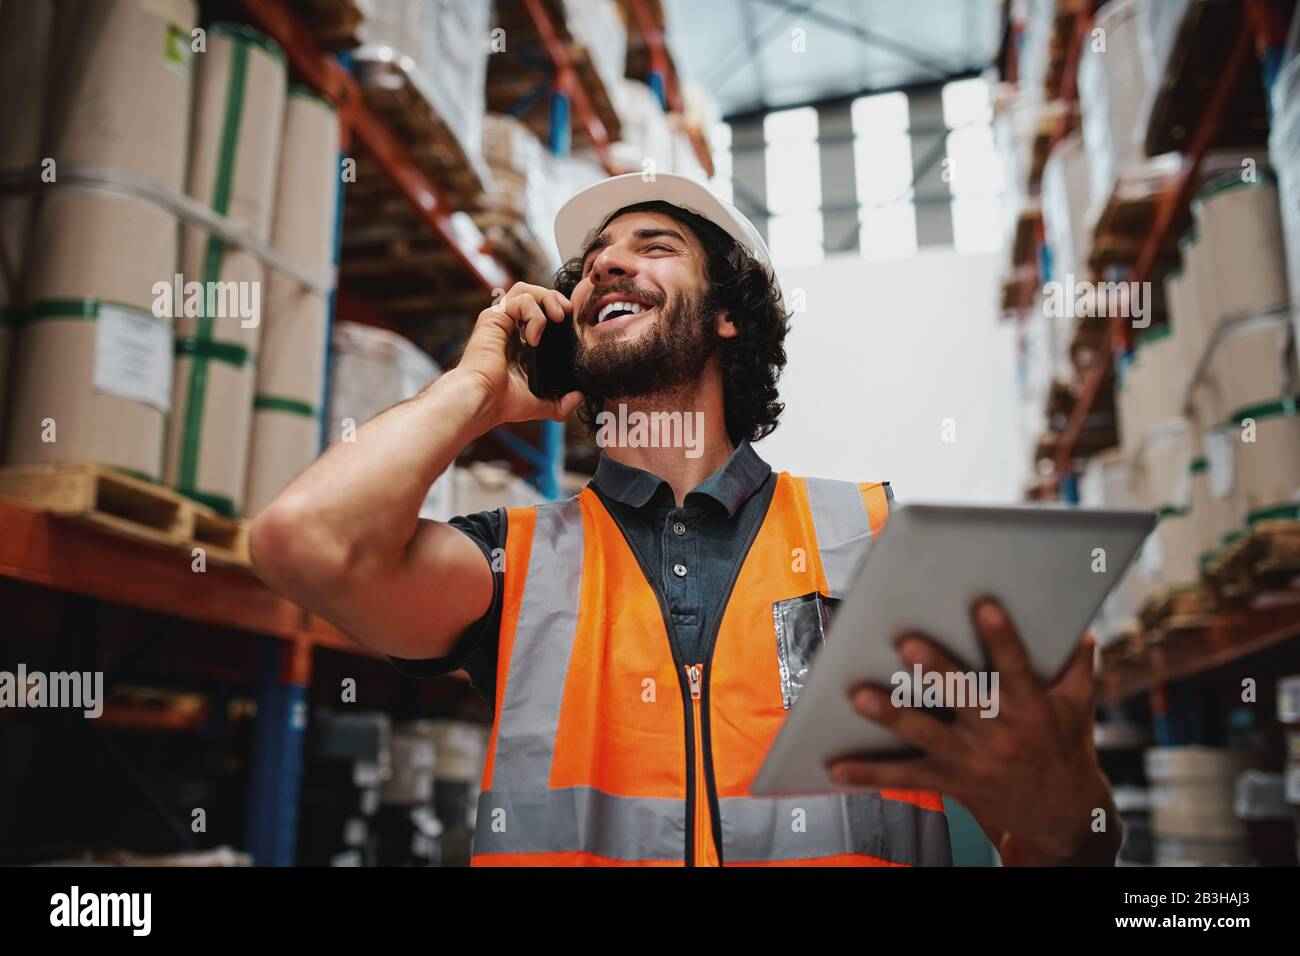 Low angle view of cheerful warehouse supervisor using phone for communication holding digital tablet wearing hardhat and safety vest Stock Photo